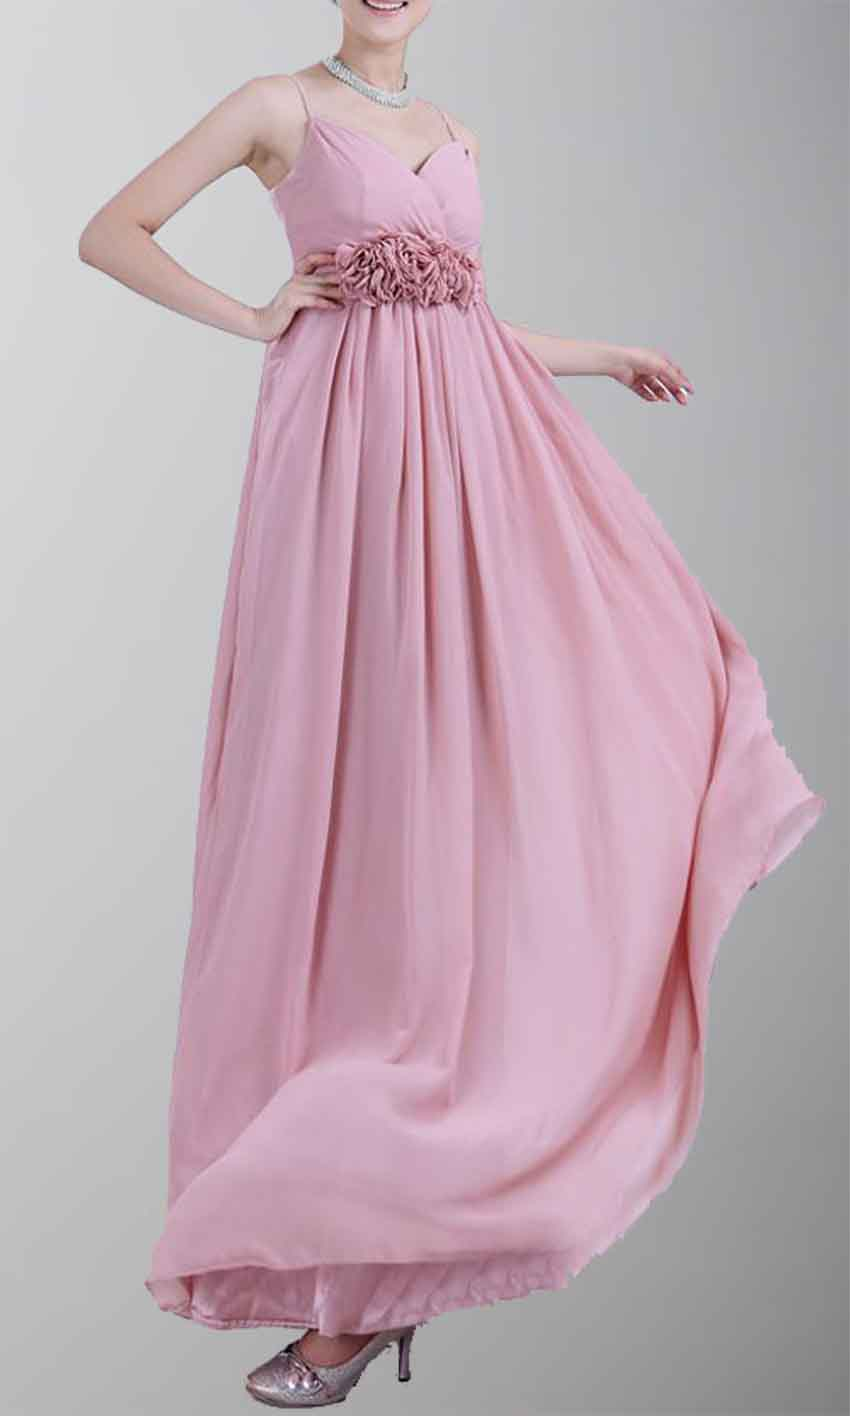 Unusual Original Impressions Bridesmaid Dresses KSP063 [KSP063] - £89.00 : Cheap Prom Dresses Uk, Bridesmaid Dresses, 2014 Prom & Evening Dresses, Look for cheap elegant prom dresses 2014, cocktail gowns, or dresses for special occasions? kissprom.co.uk offers various bridesmaid dresses, evening dress, free shipping to UK etc.